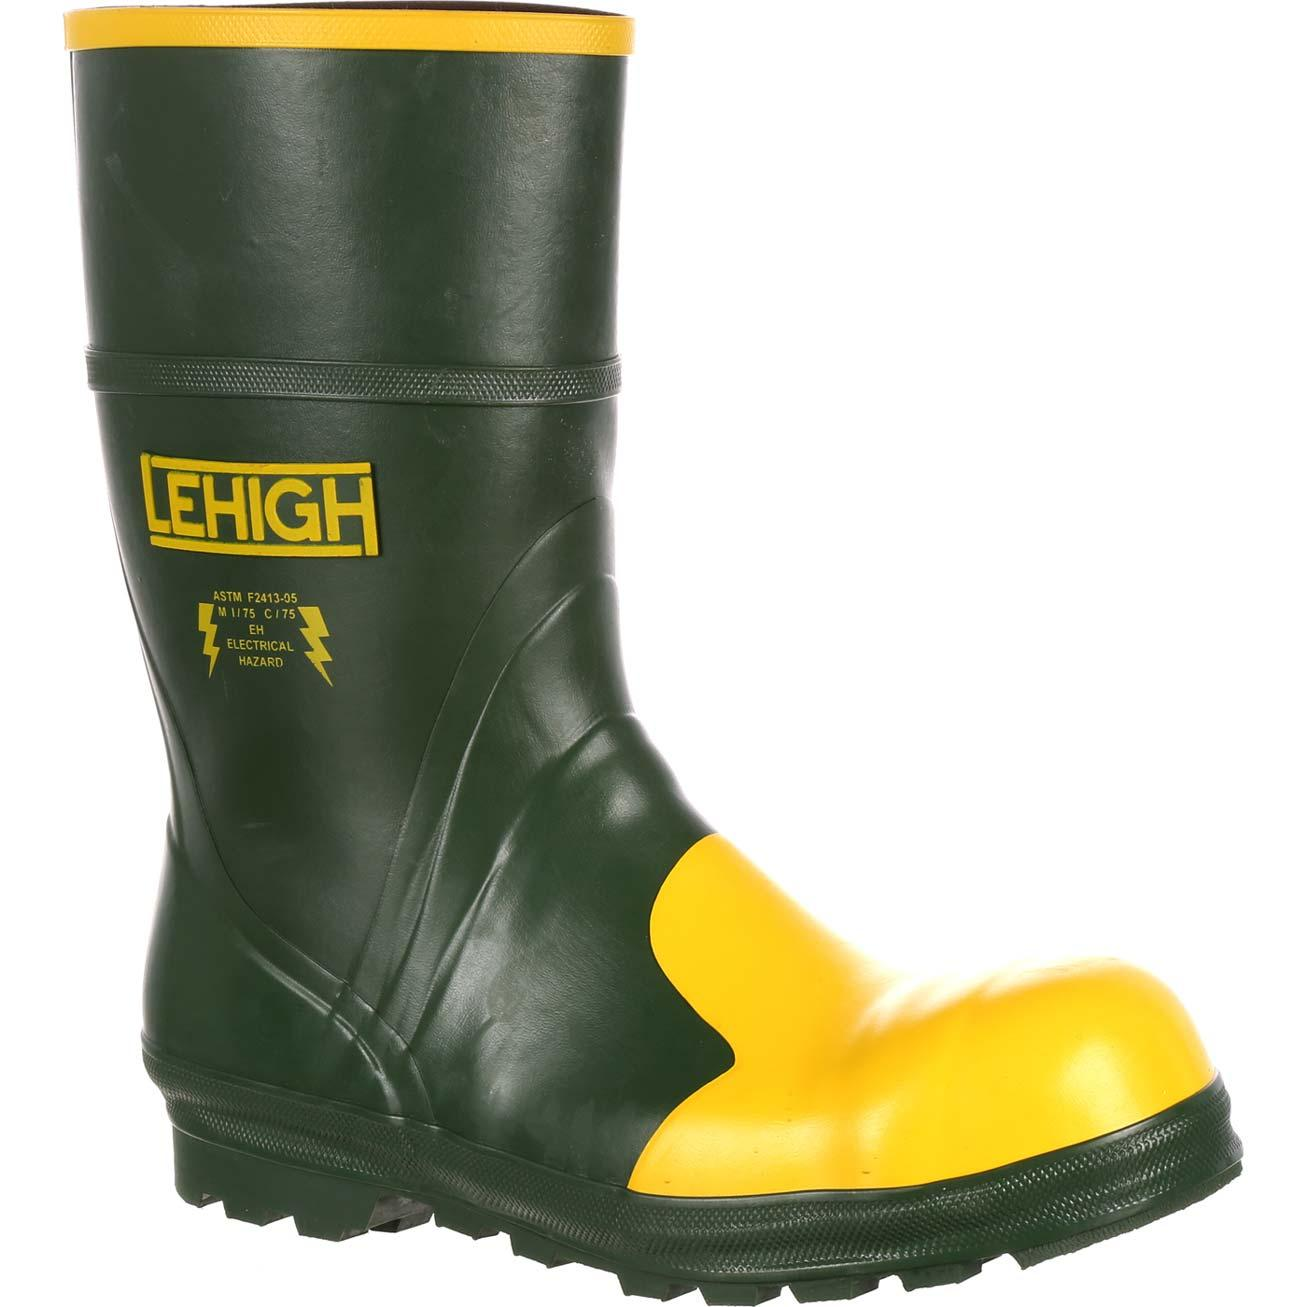 Lehigh Safety Shoes Uni Steel Toe Rubber Hydroshock Waterproof Lectric Work Bootlehigh